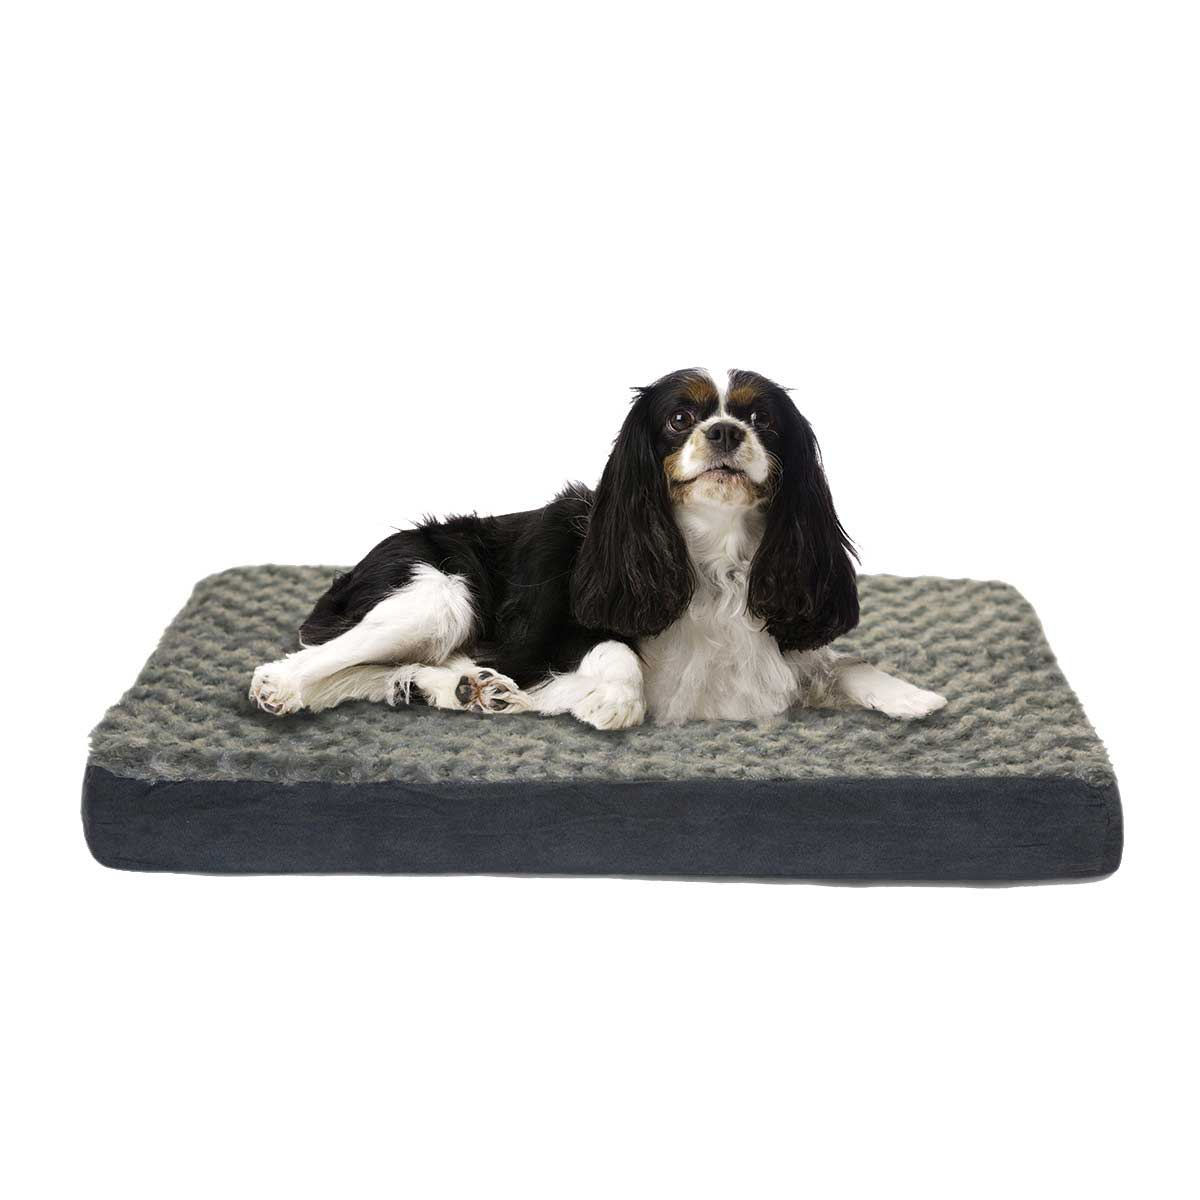 Gray Furhaven Nap Ultra Plush Deluxe Orthopedic Mats With Memory Foam - 35 in by 44 in by 4 inches